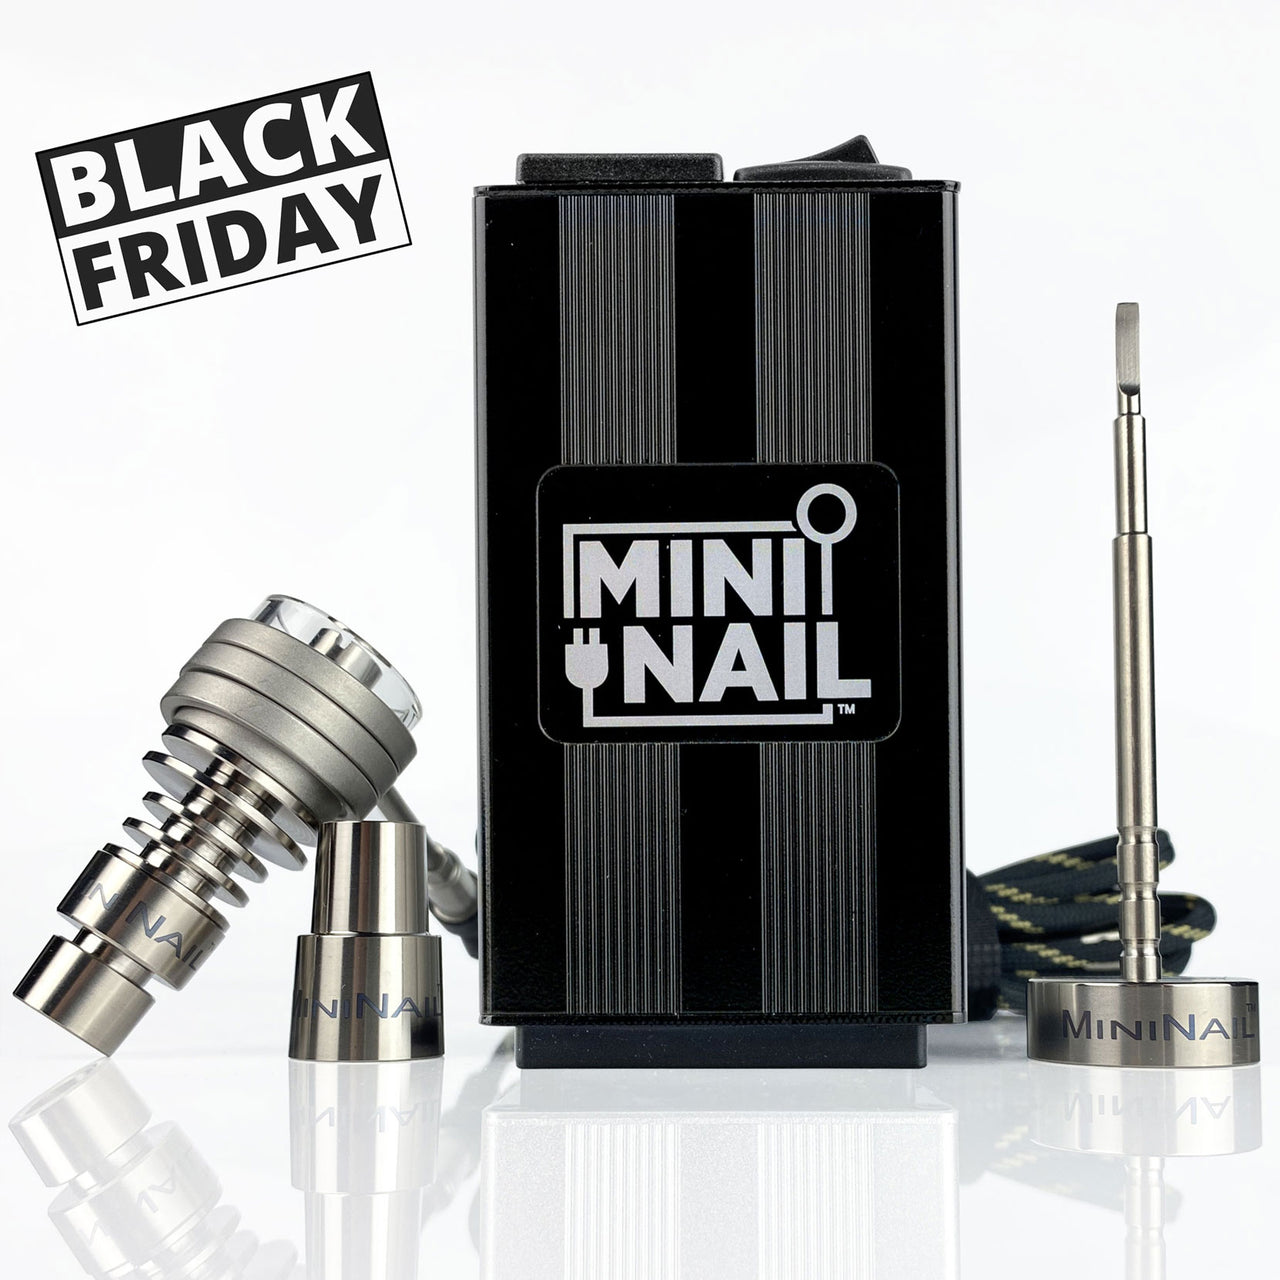 Black Friday Quartz Hybrid DeepDish Complete Enail Kit